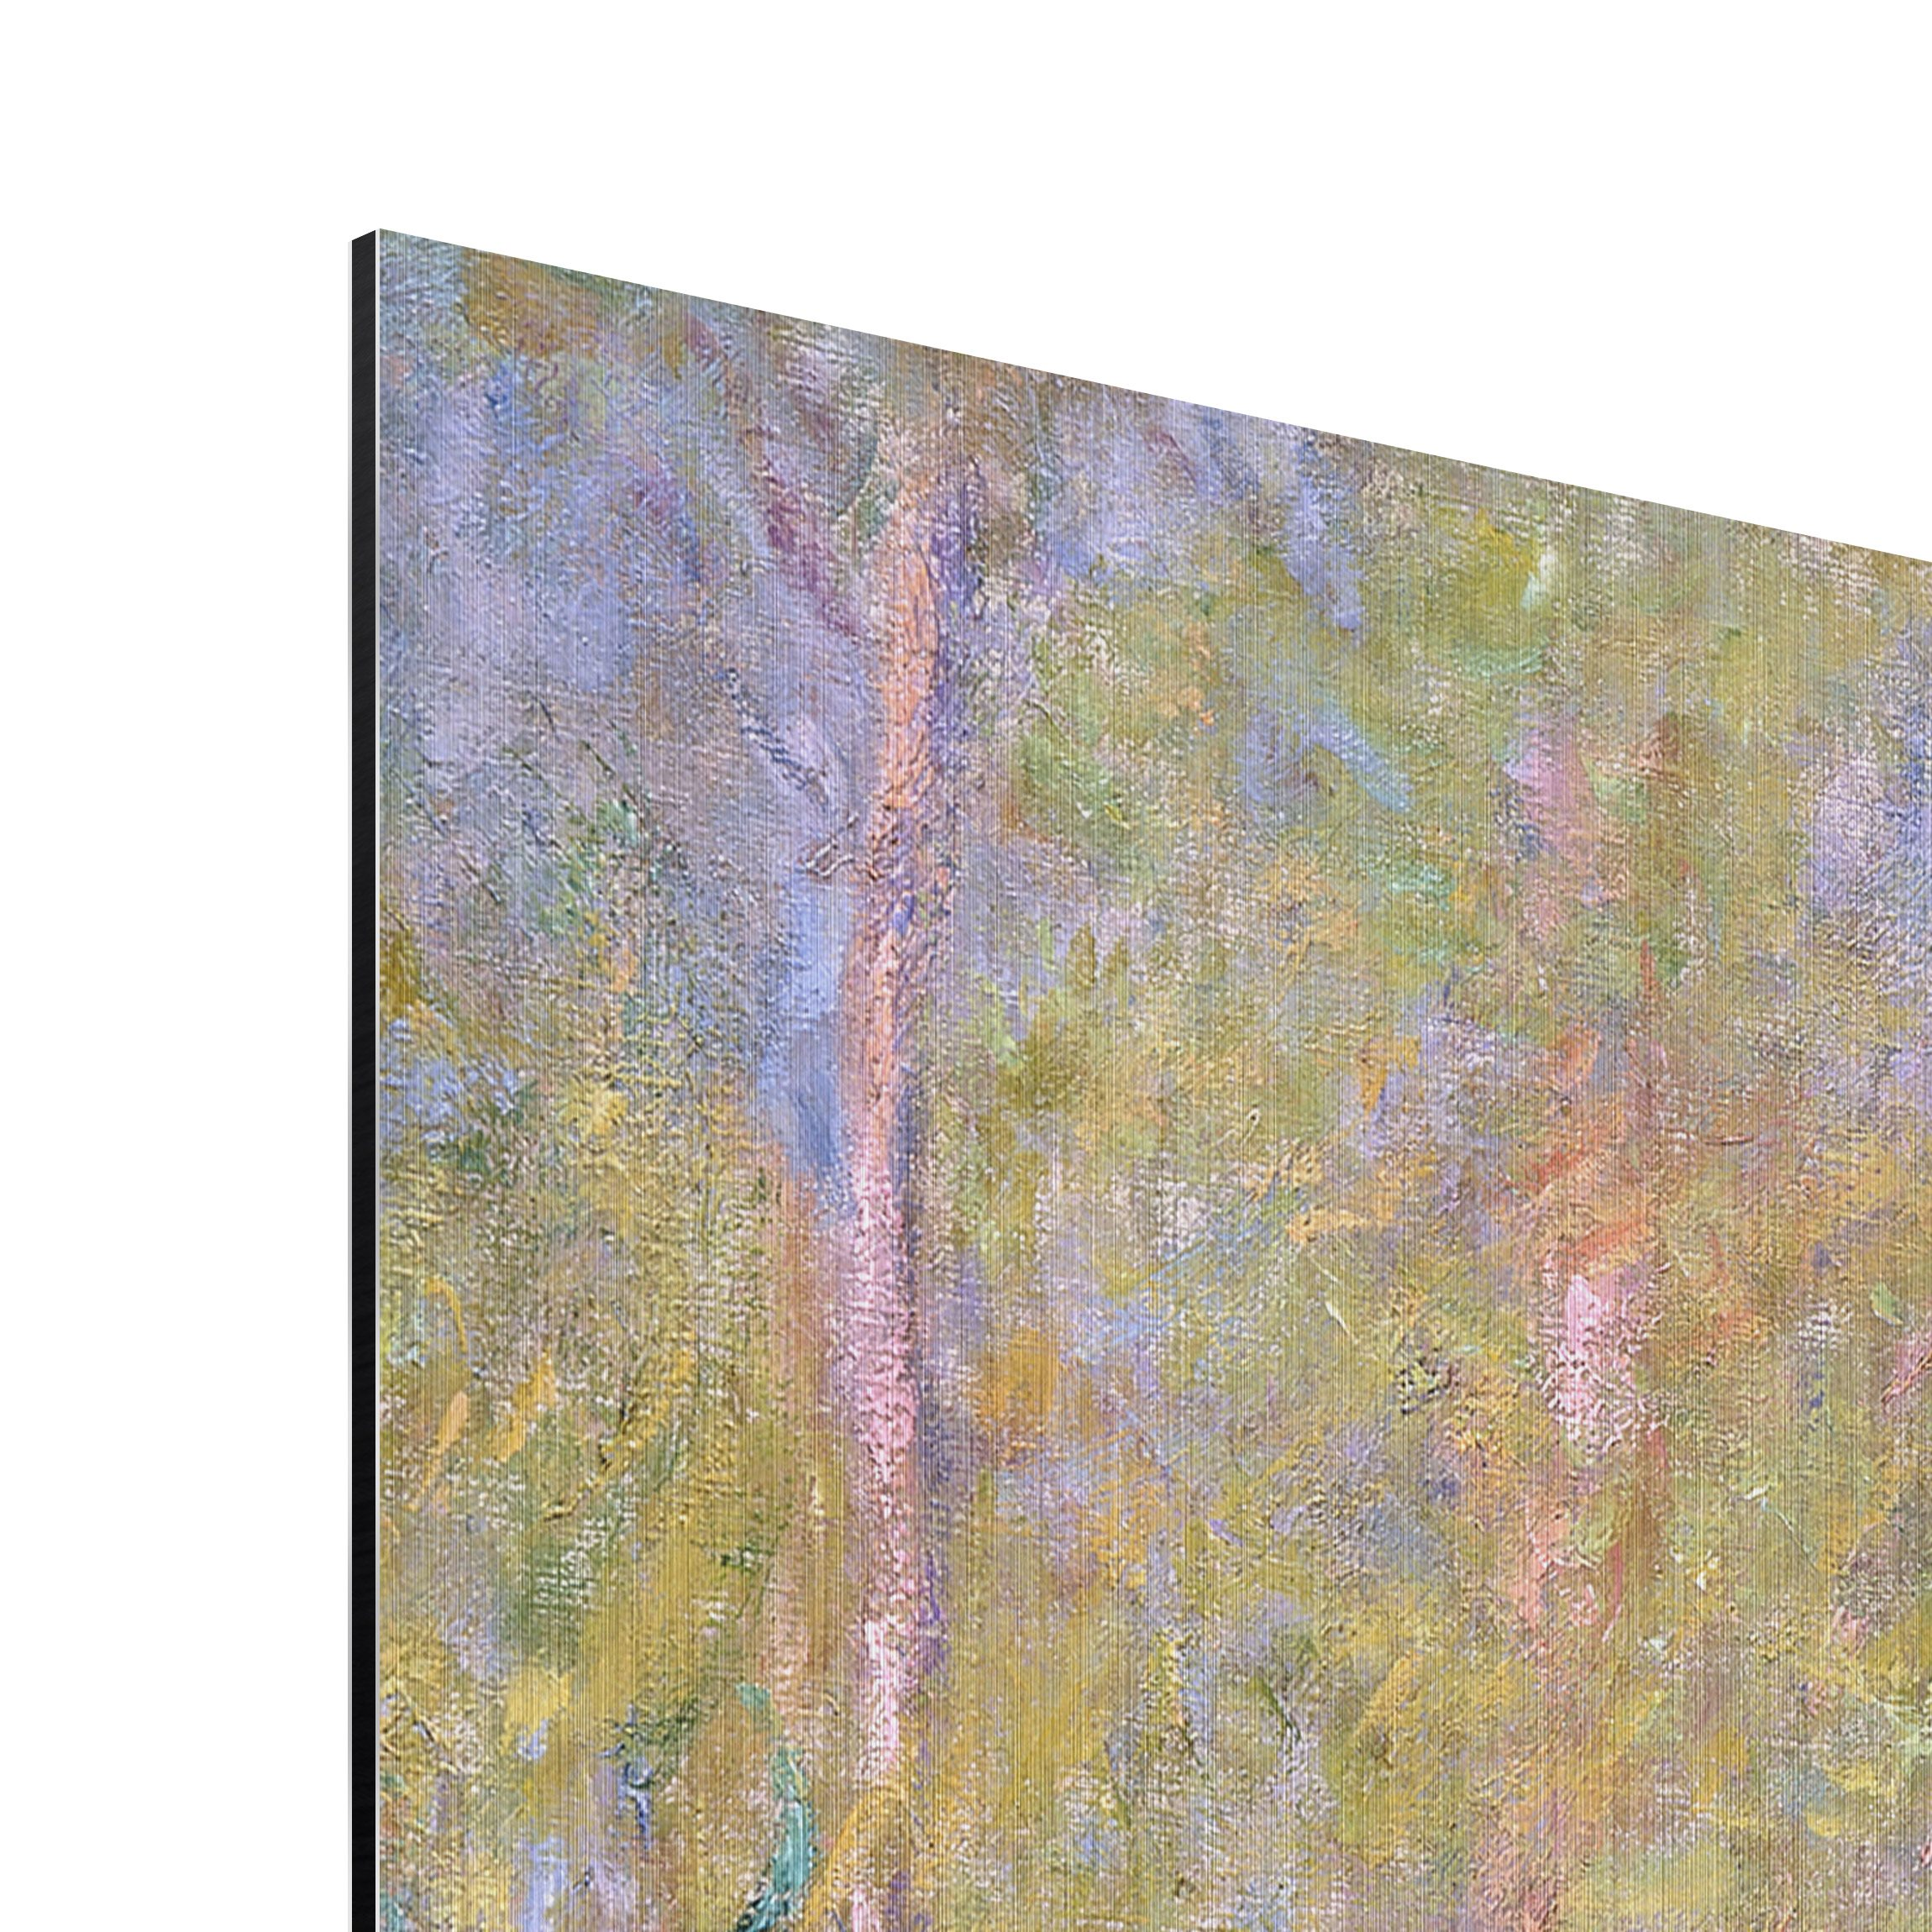 alu dibond geb rstet kunstdruck claude monet br cke in monets garten impressionismus. Black Bedroom Furniture Sets. Home Design Ideas